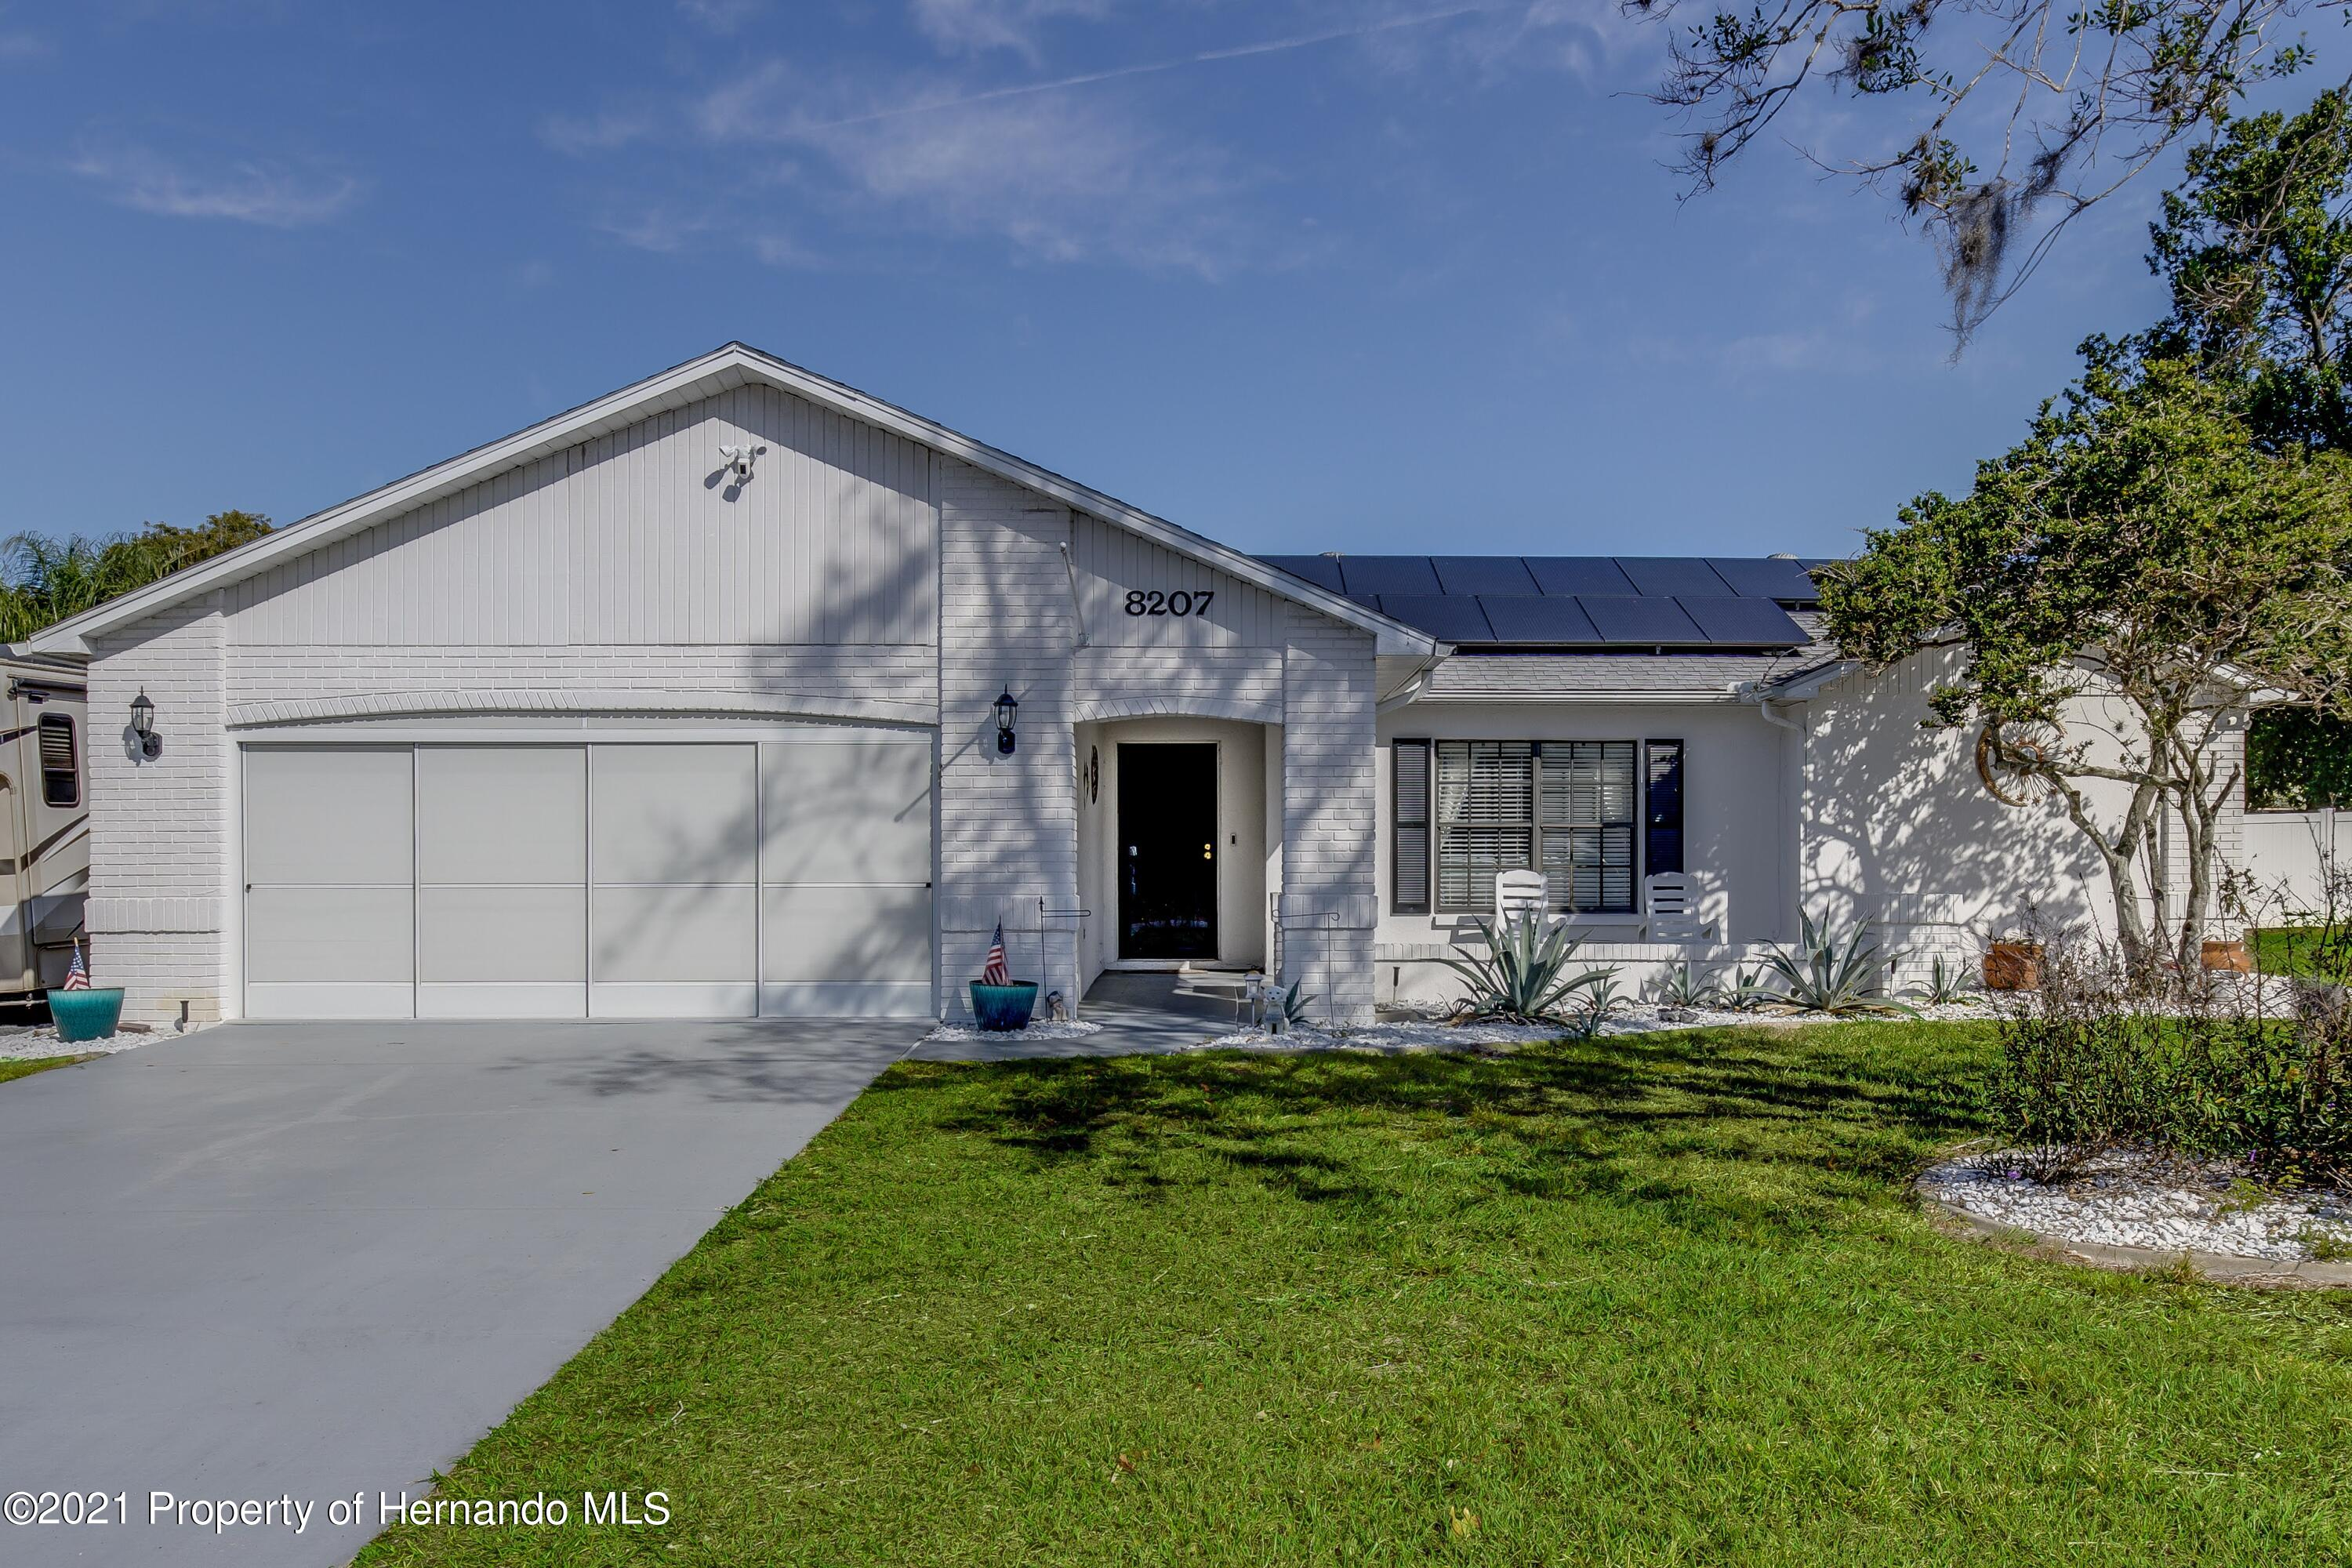 Details for 8207 Wooden Drive, Spring Hill, FL 34606